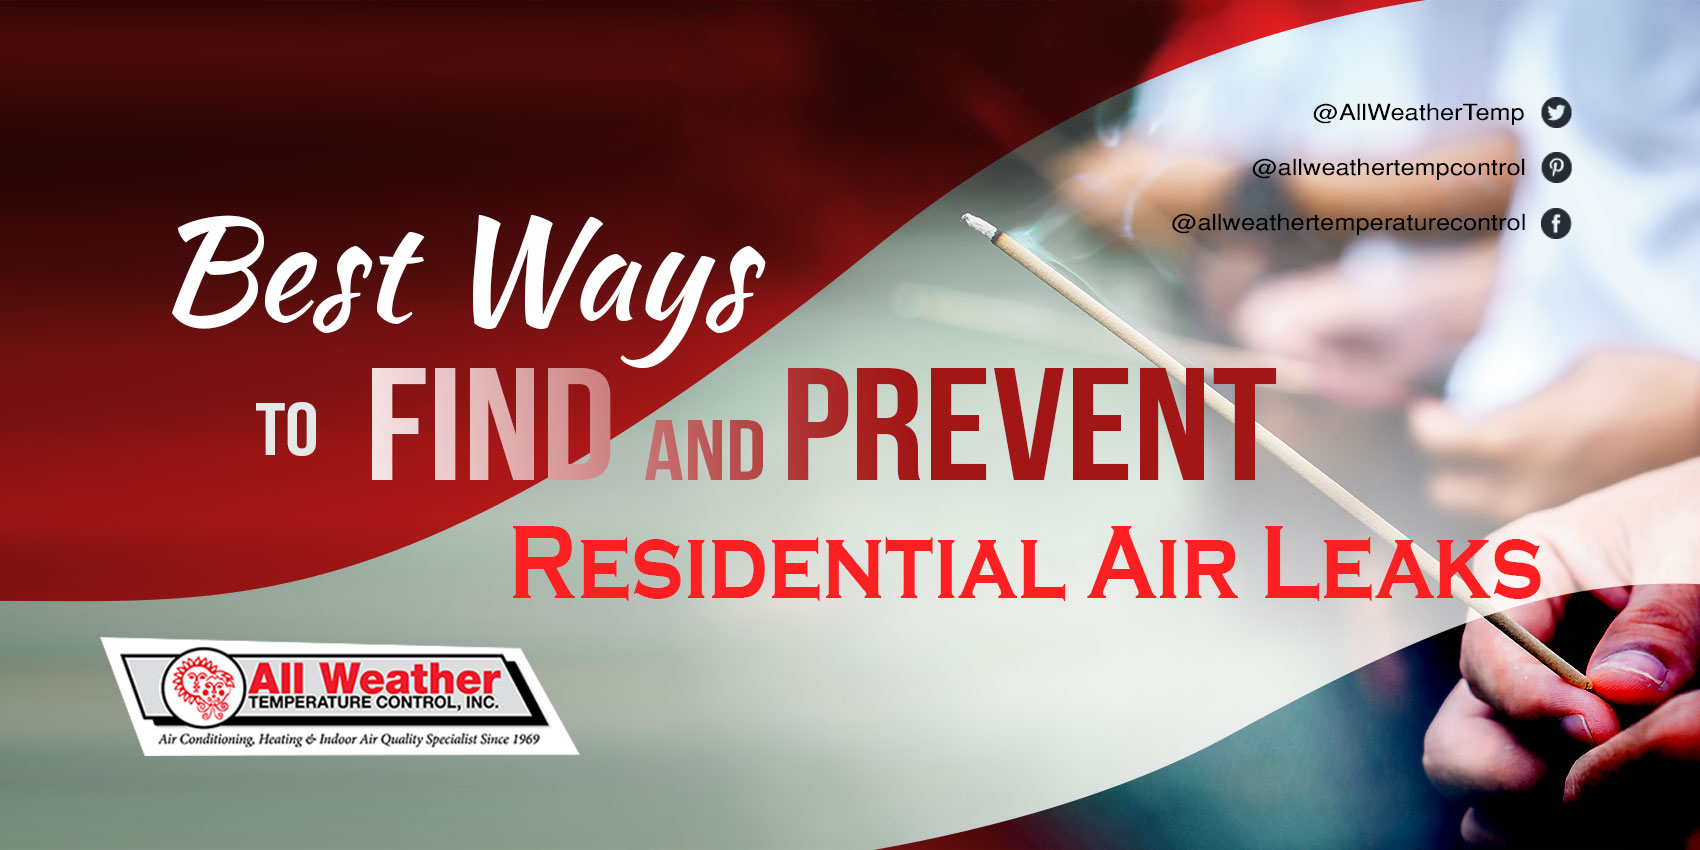 Best Ways to Find and Prevent Residential Air Leaks